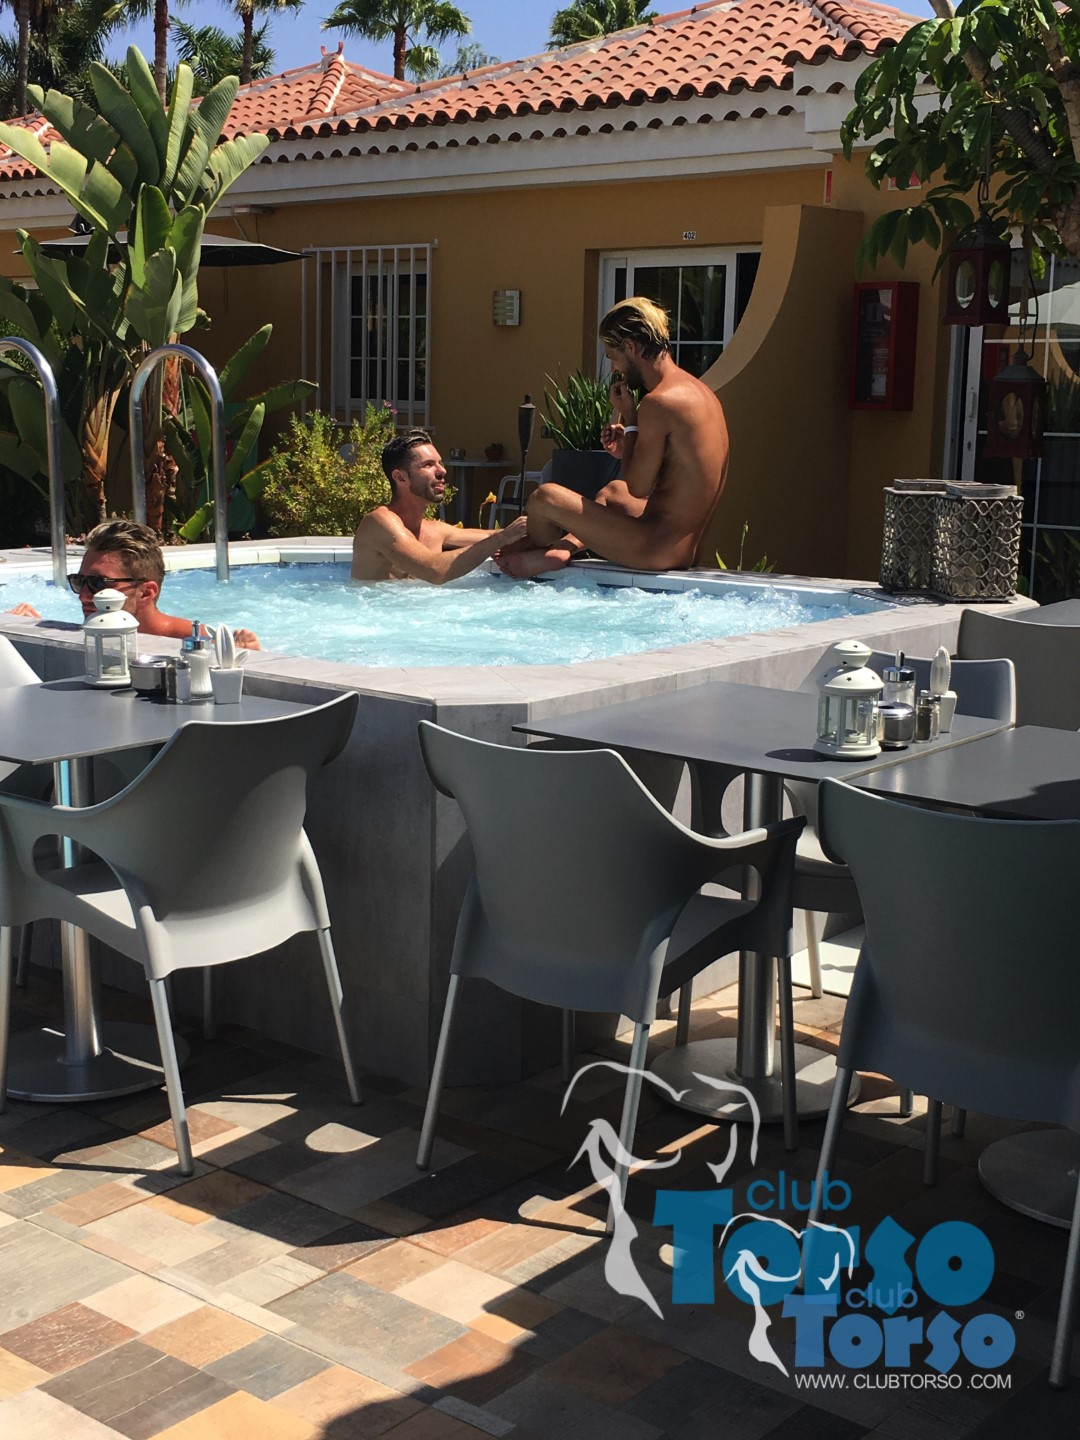 playa del ingles gay resort